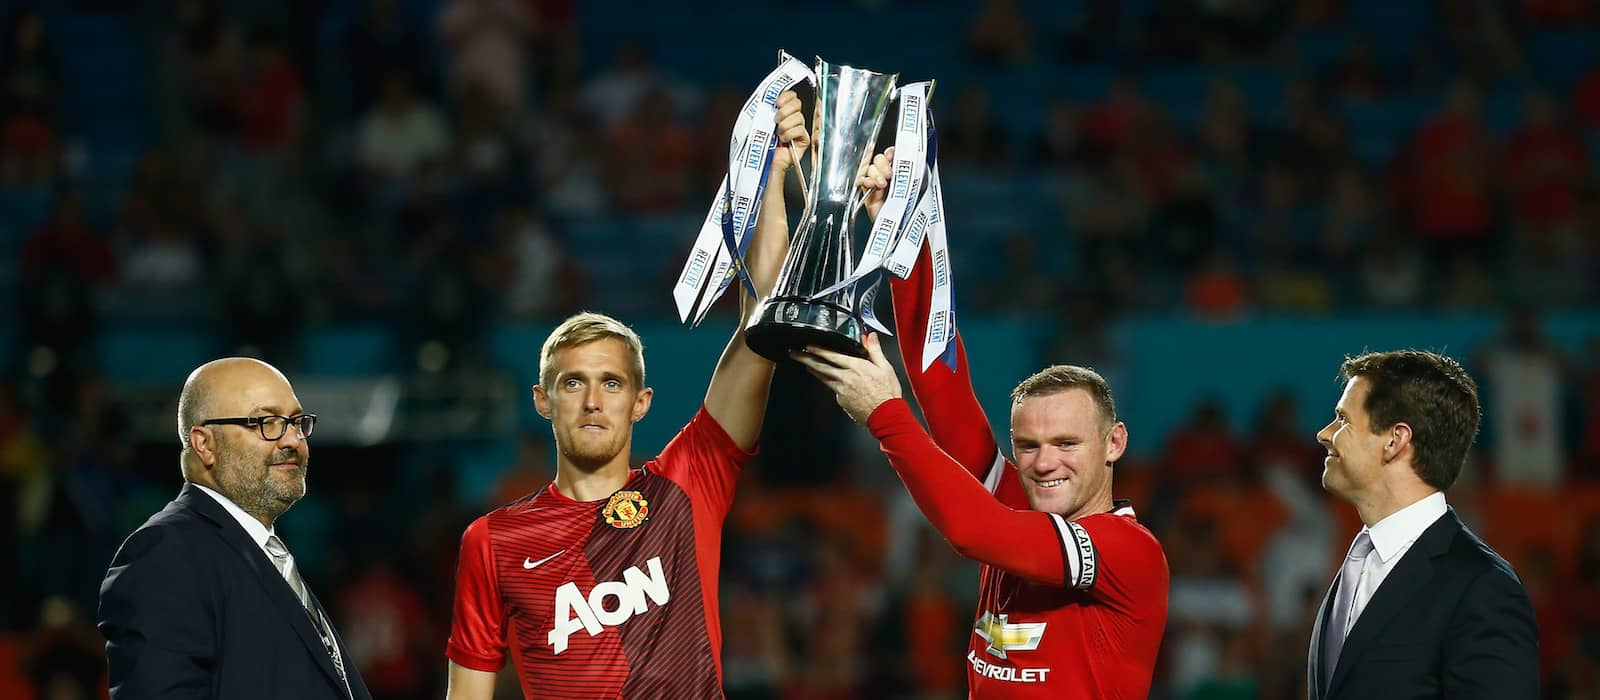 Darren Fletcher appointed to Man United first team coaching staff